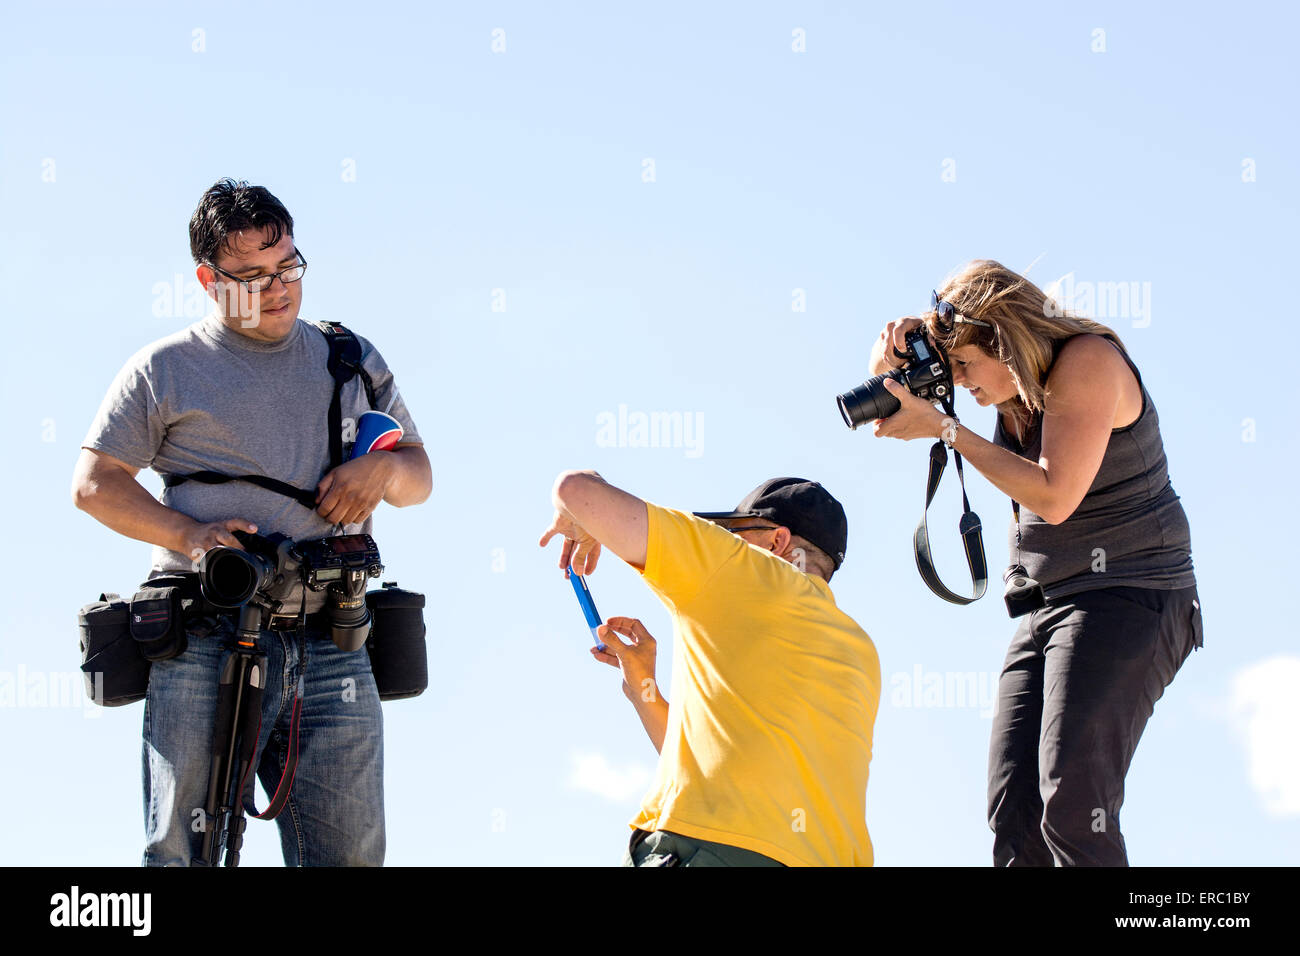 Three photographers together with one modeling. - Stock Image